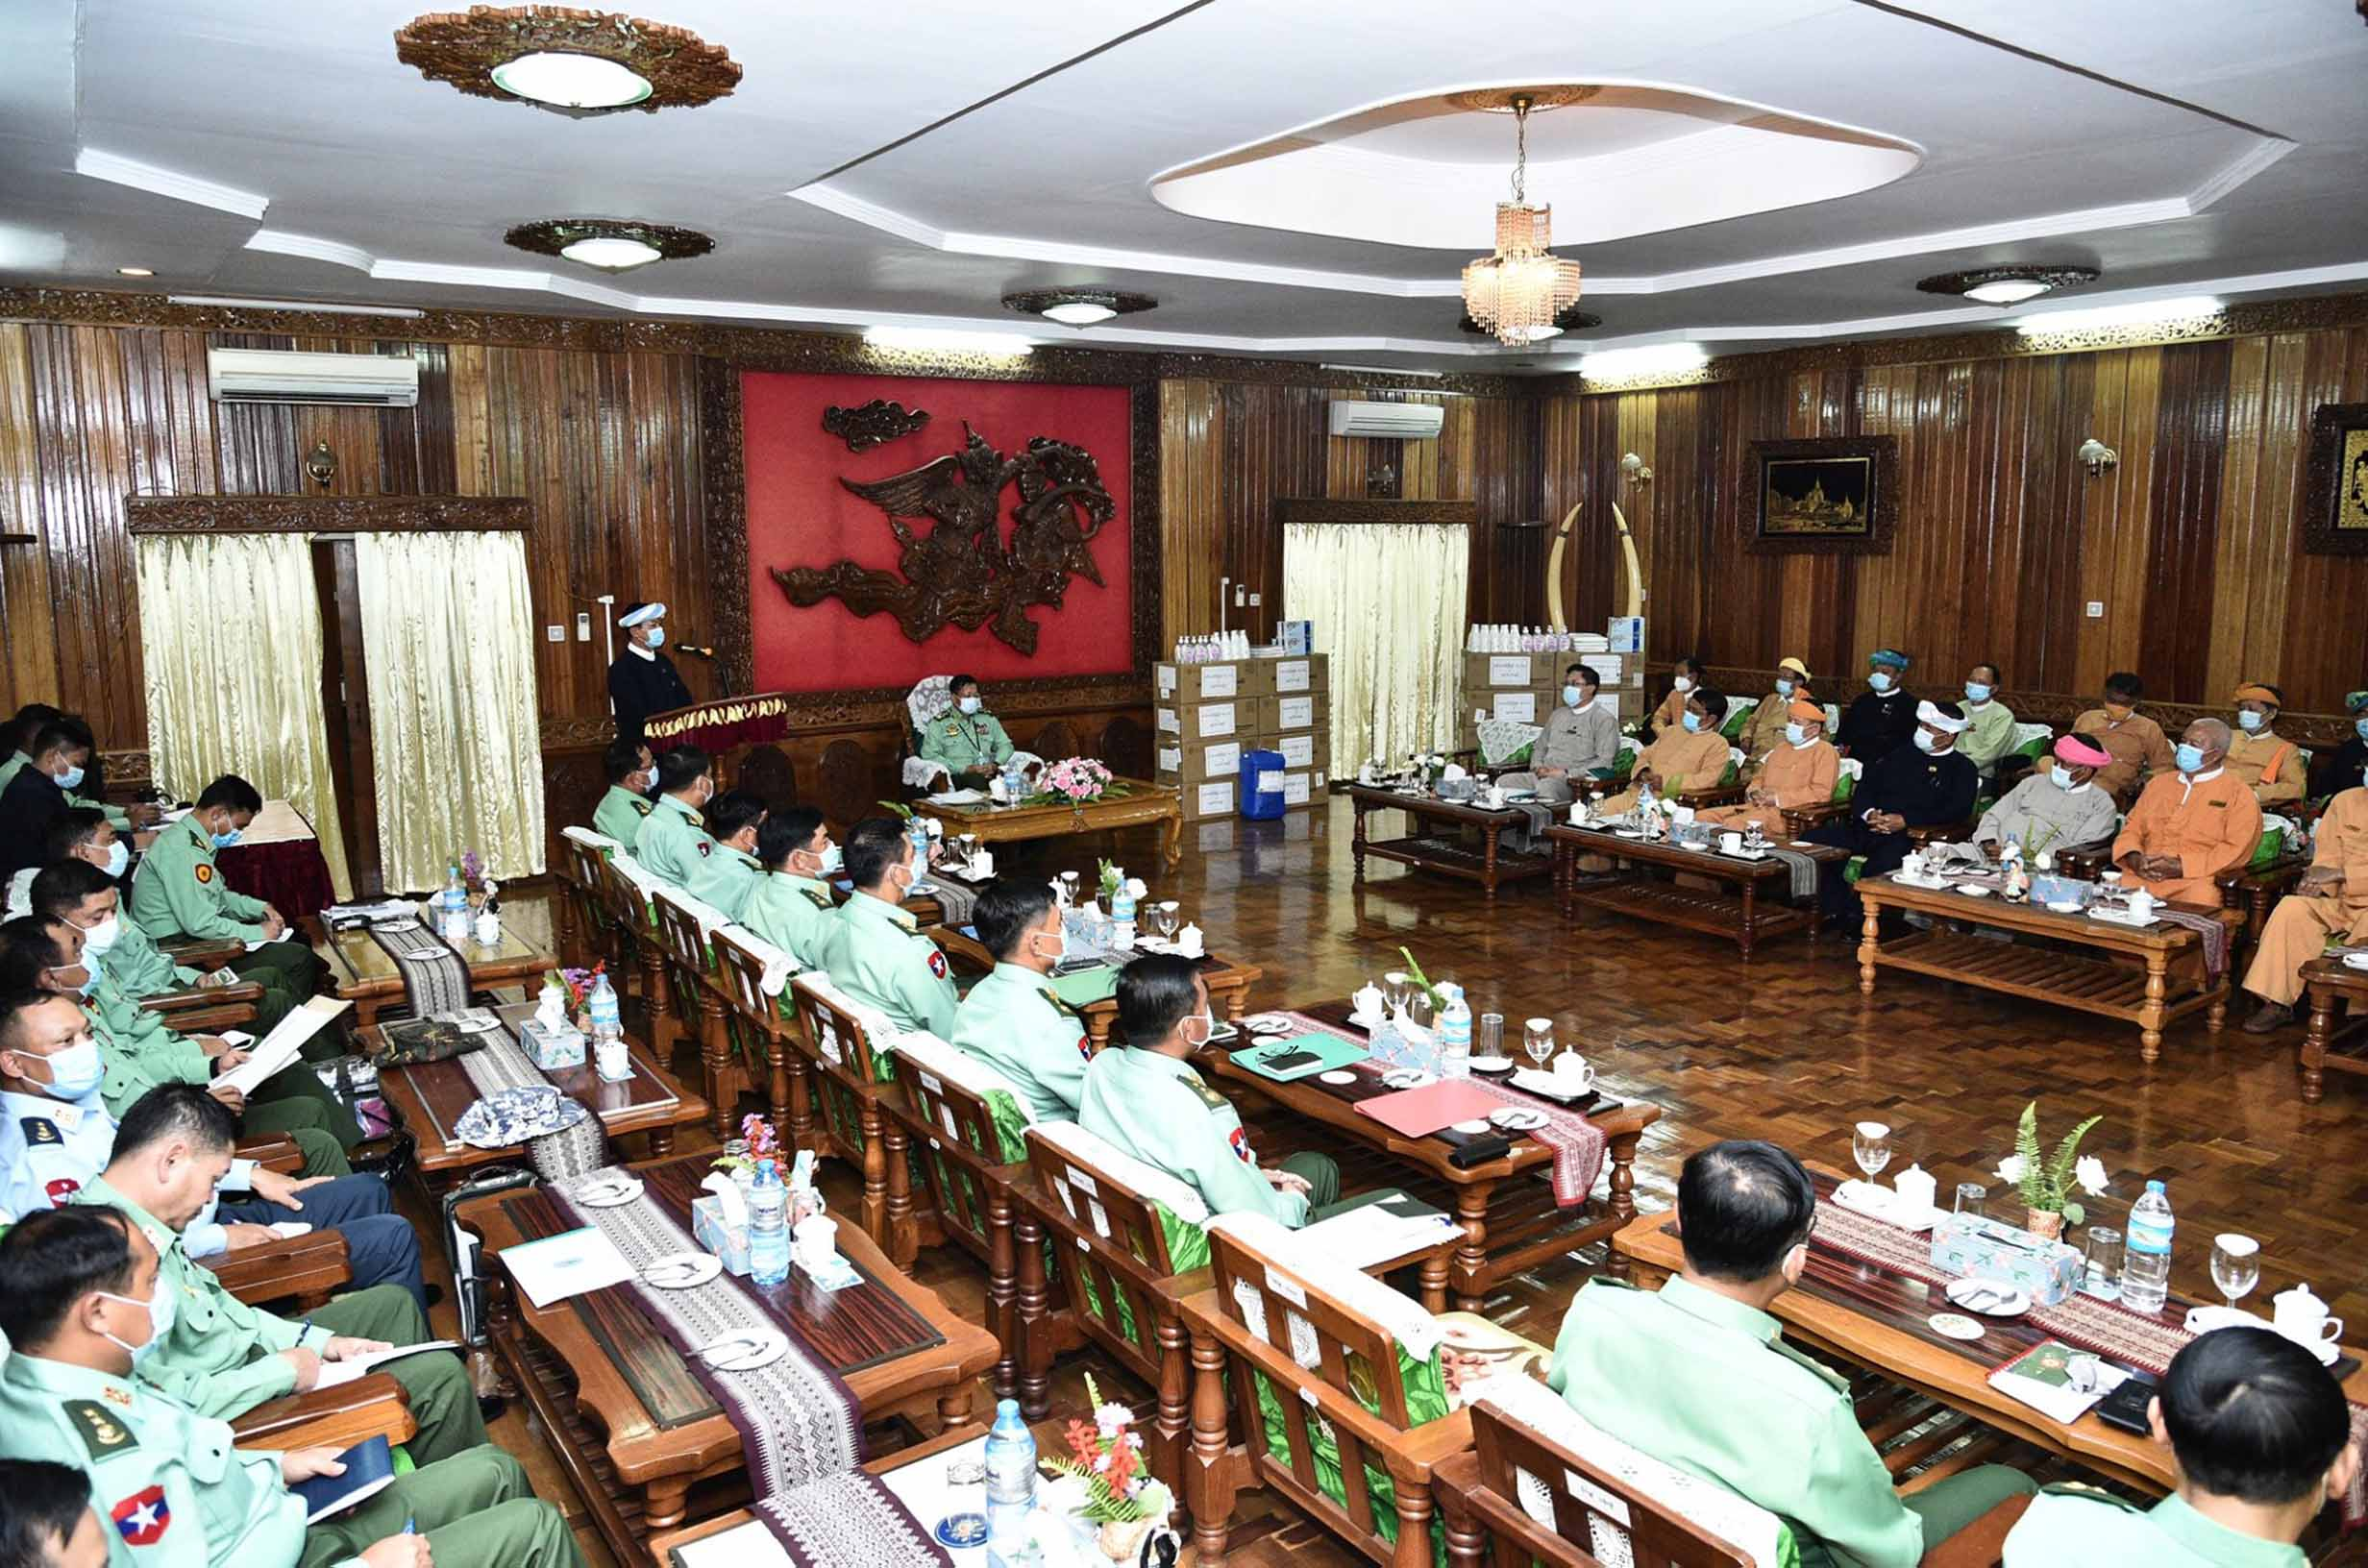 Senior General Min Aung Hlaing holds discussions with ethnic representatives at the donation ceremony of COVID-19 medical supplies and food items in Taunggyi on 14 July. PHOTO: Office of Commander in Chief of Defence Services